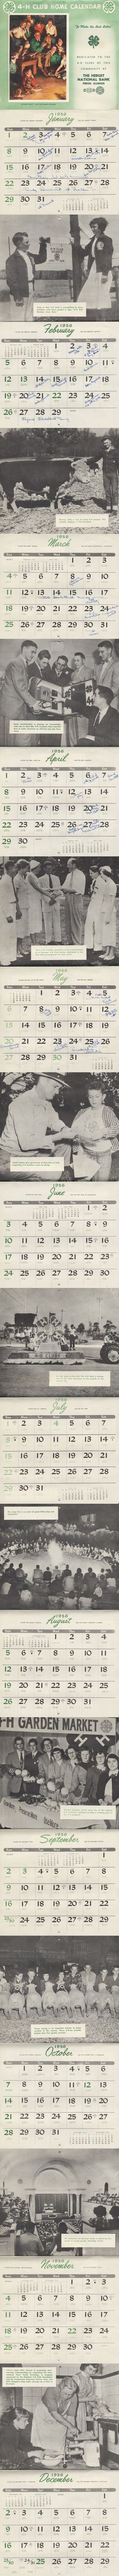 Full Historic 1952 4-H Calendar cooper extens, friday child, 4h throwback, 100 year, vintag fun, throwback photo